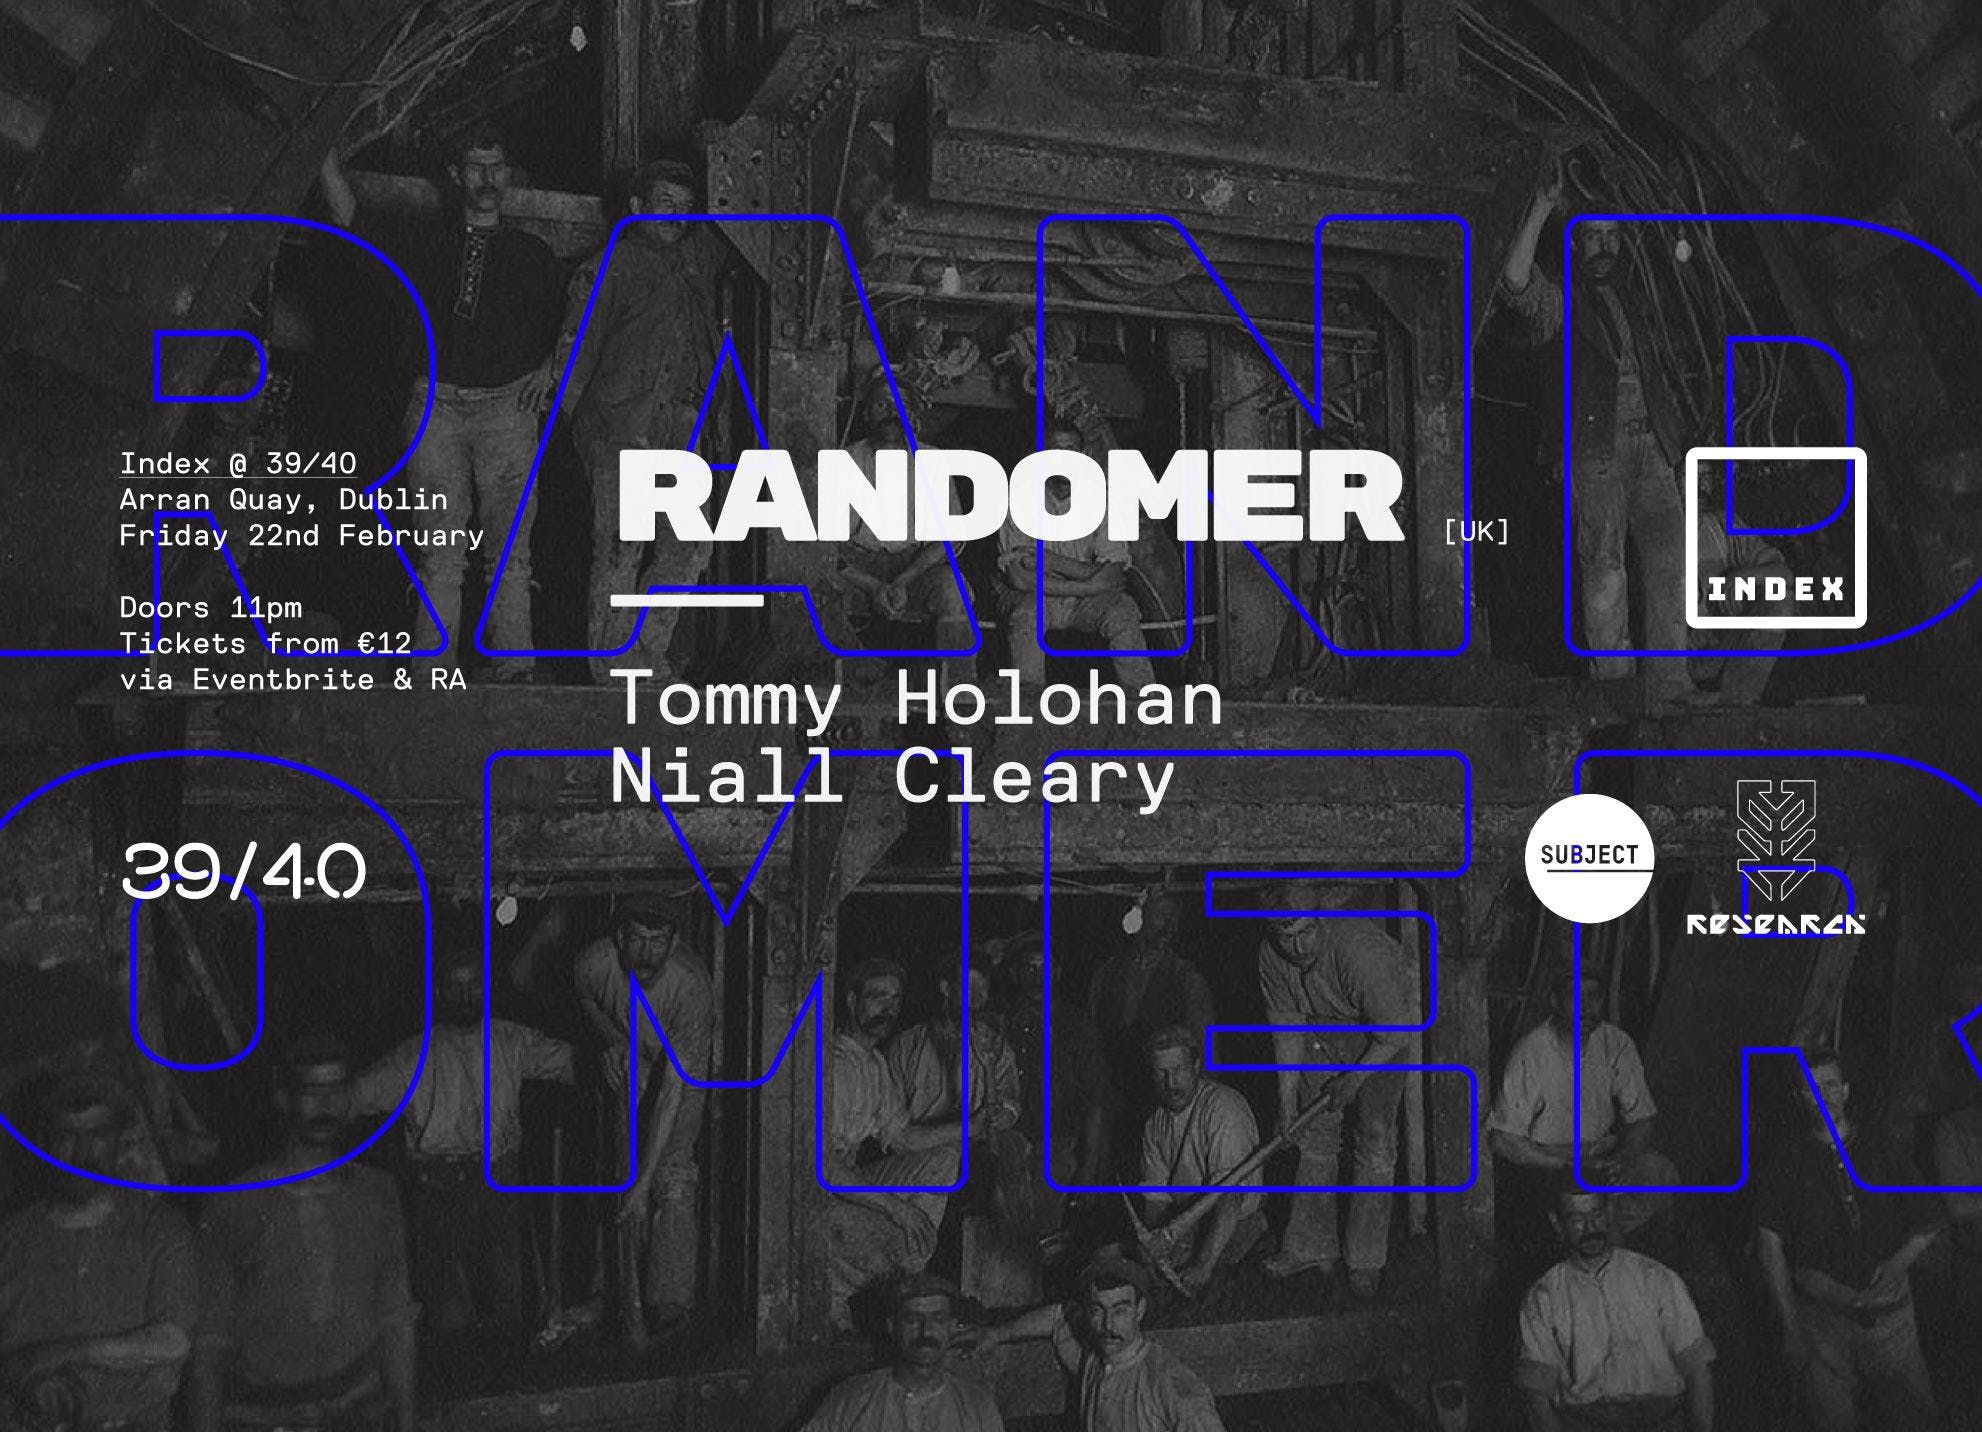 Index: Randomer, Tommy Holohan & Niall Cleary